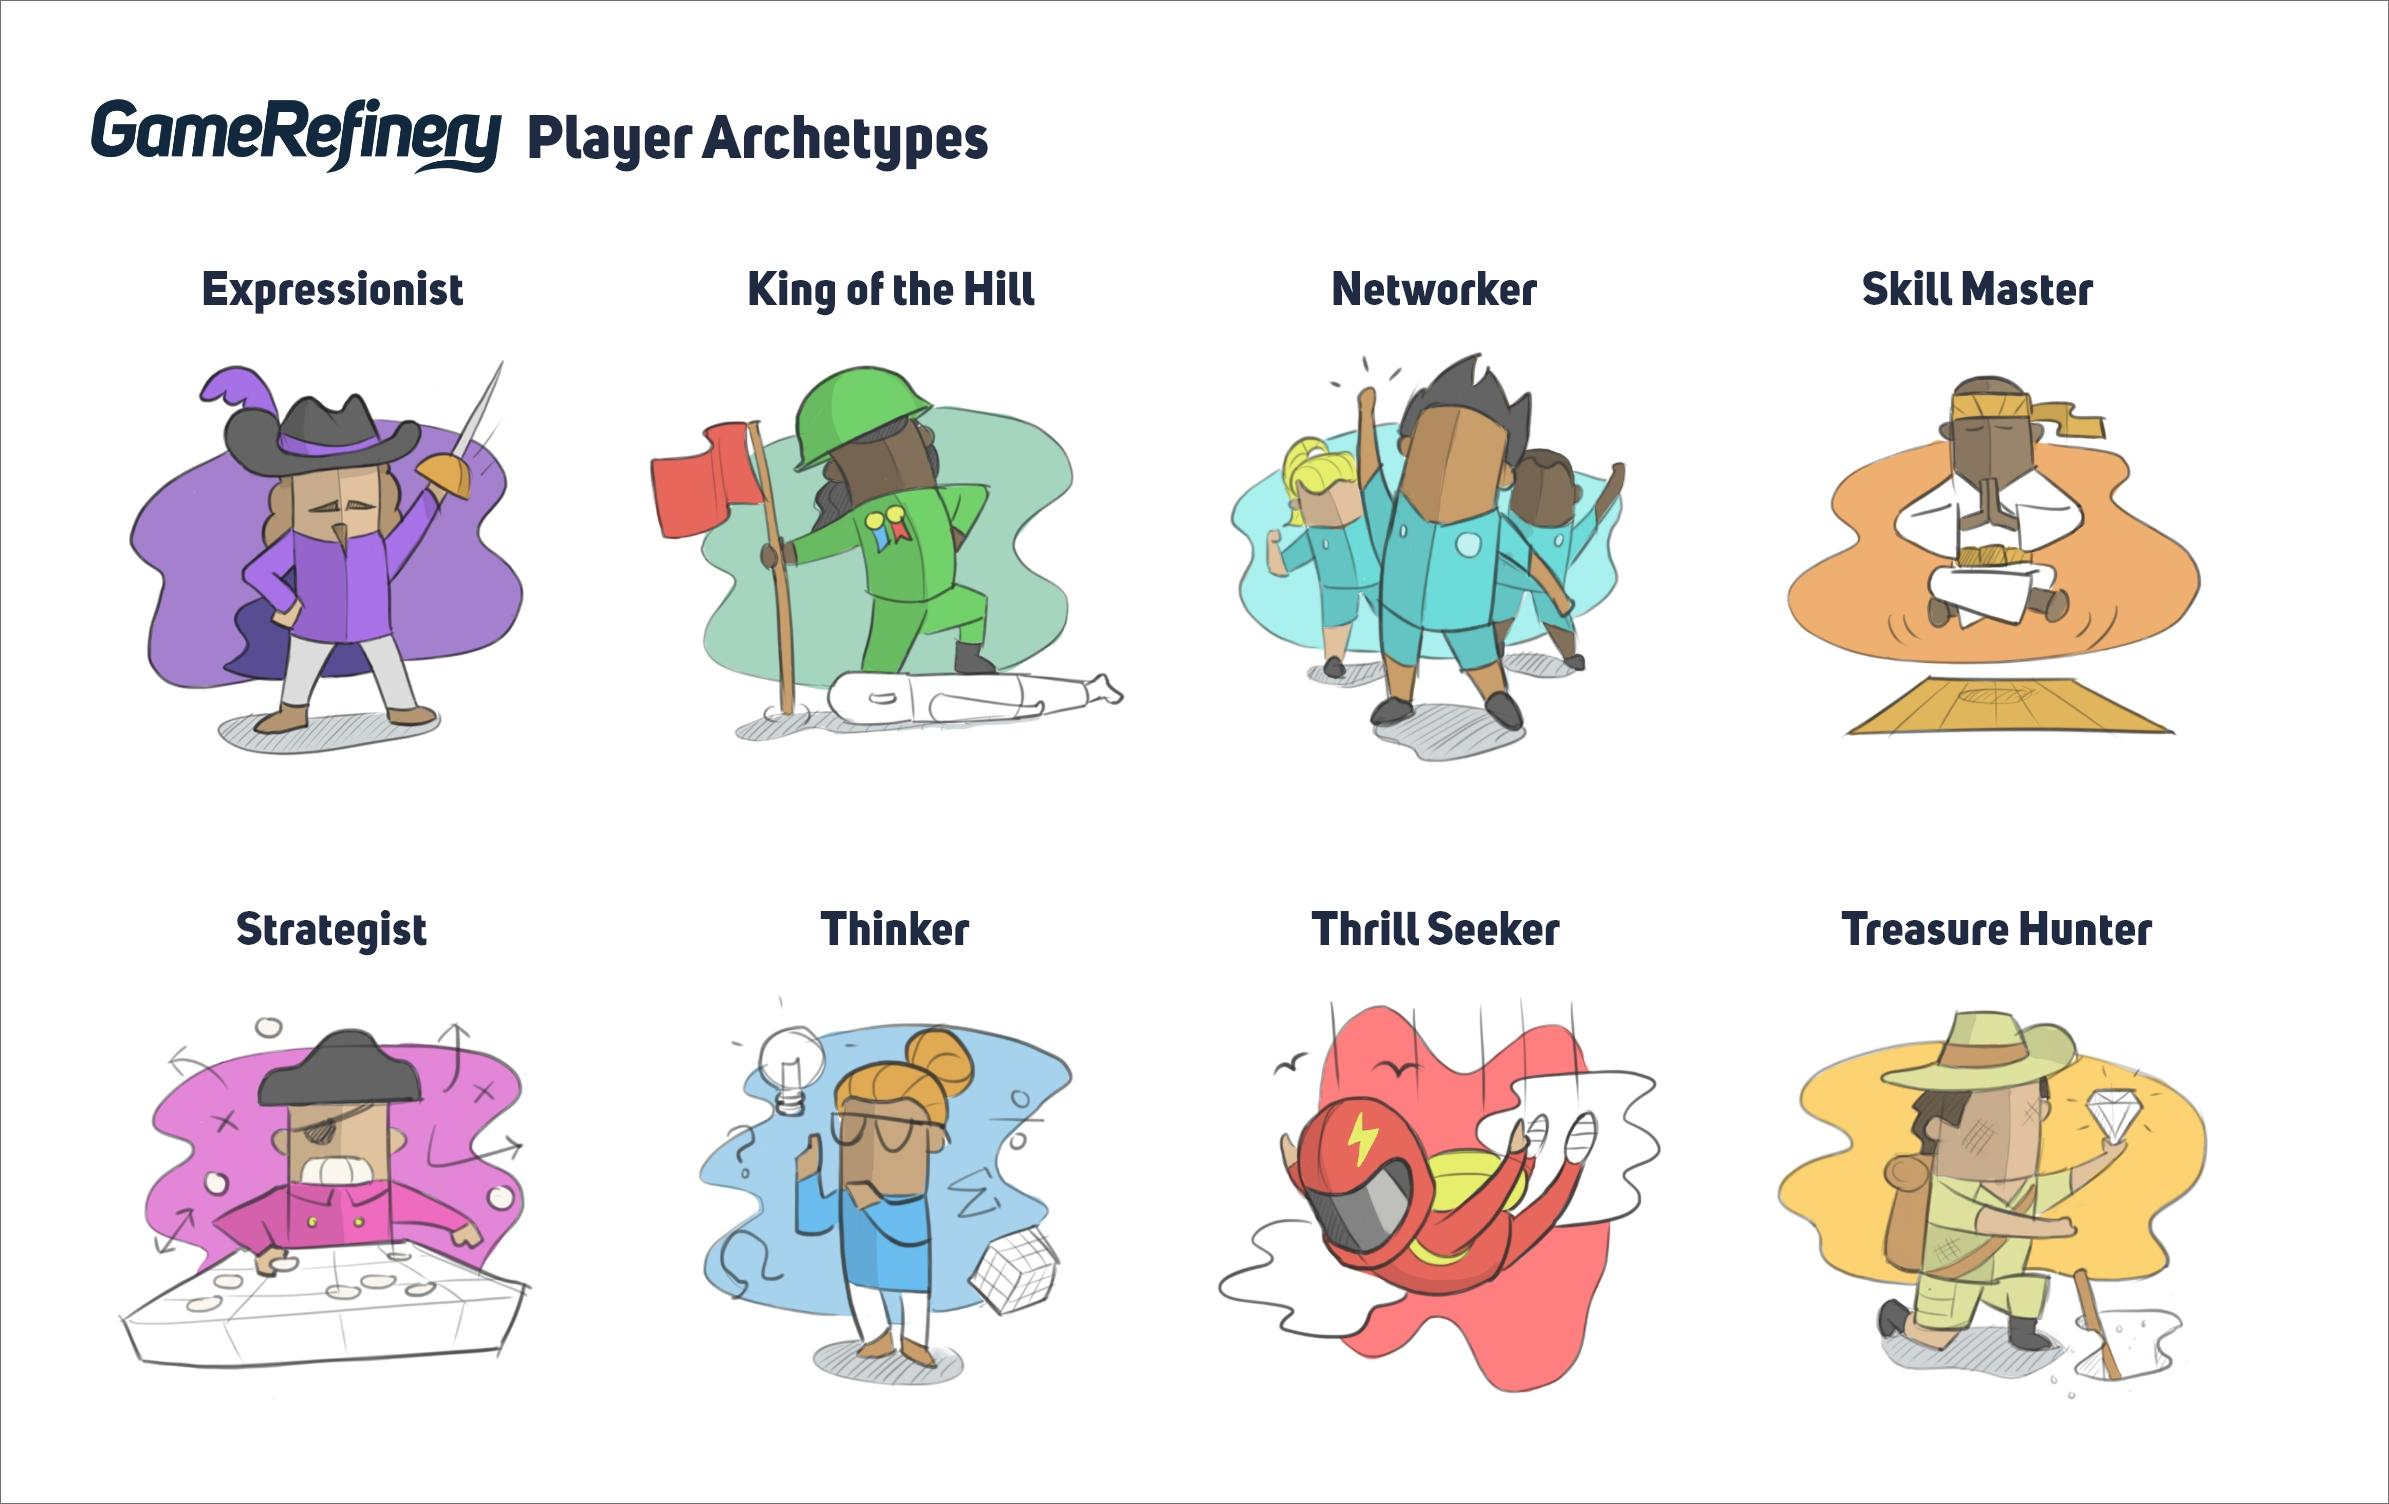 GameRefinery player archetypes